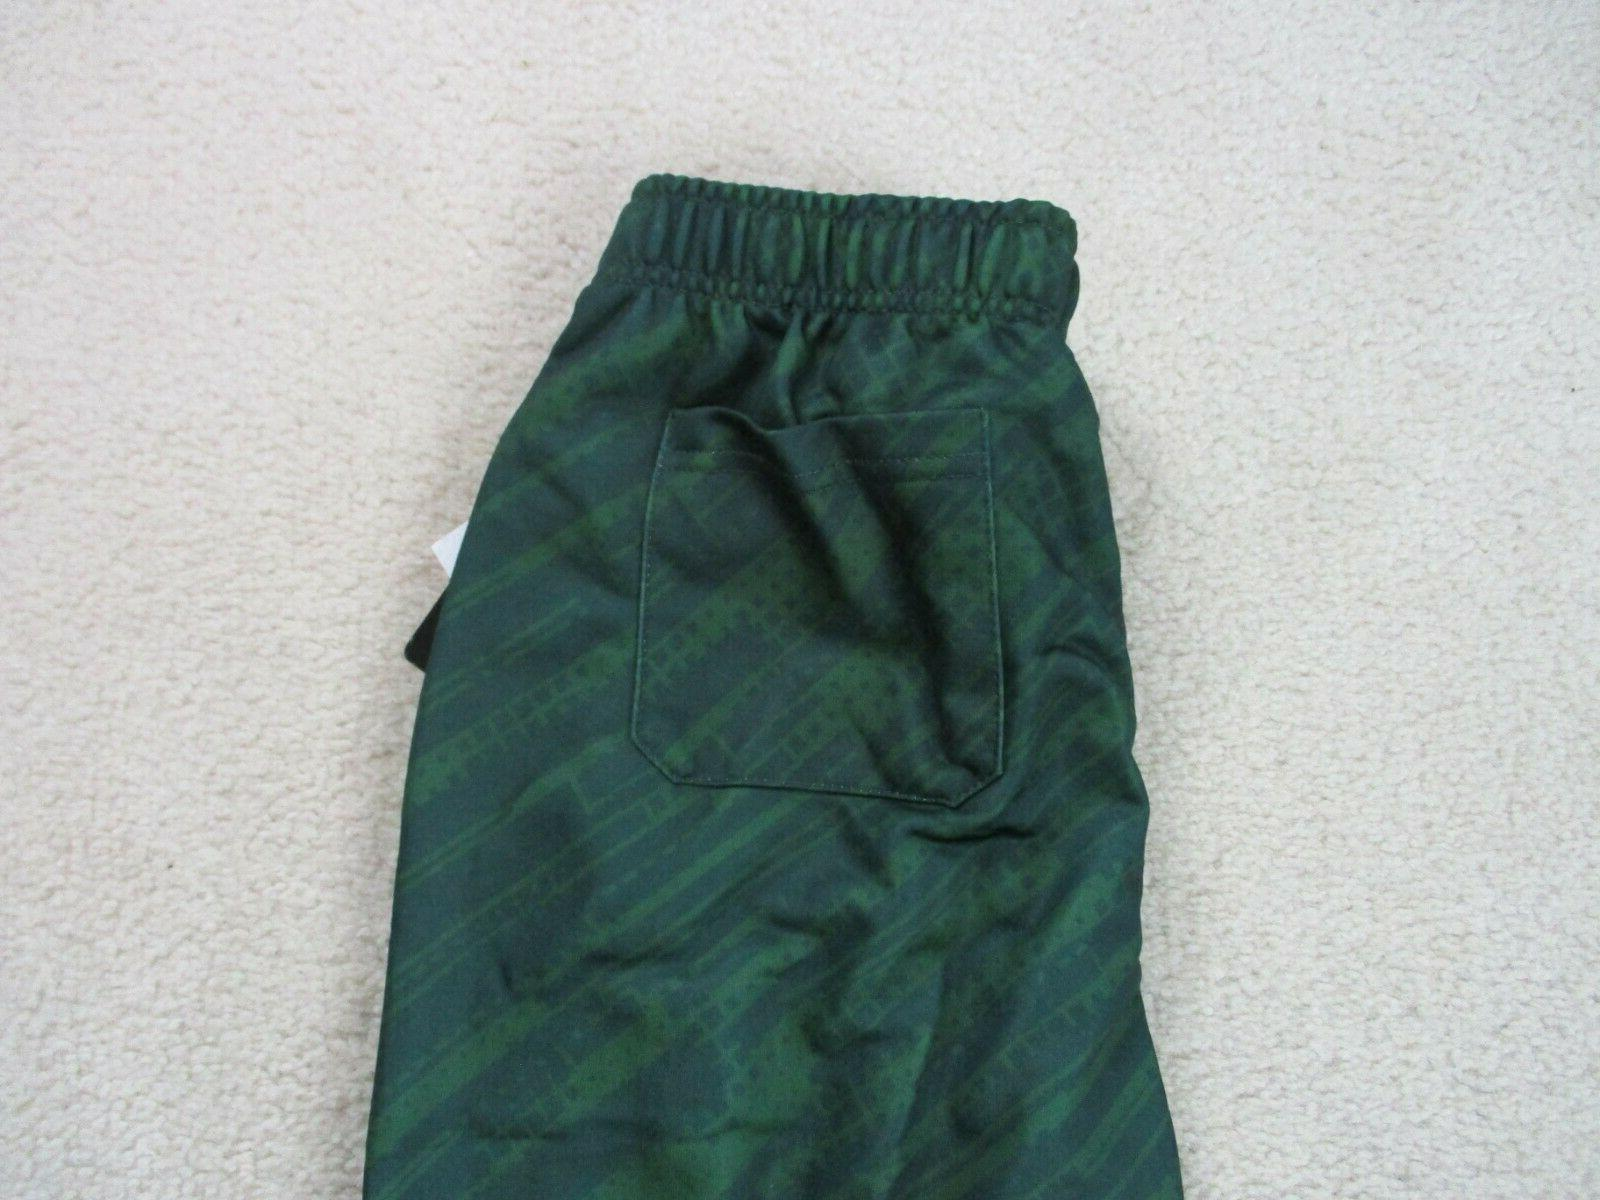 NEW Green Joggers Football